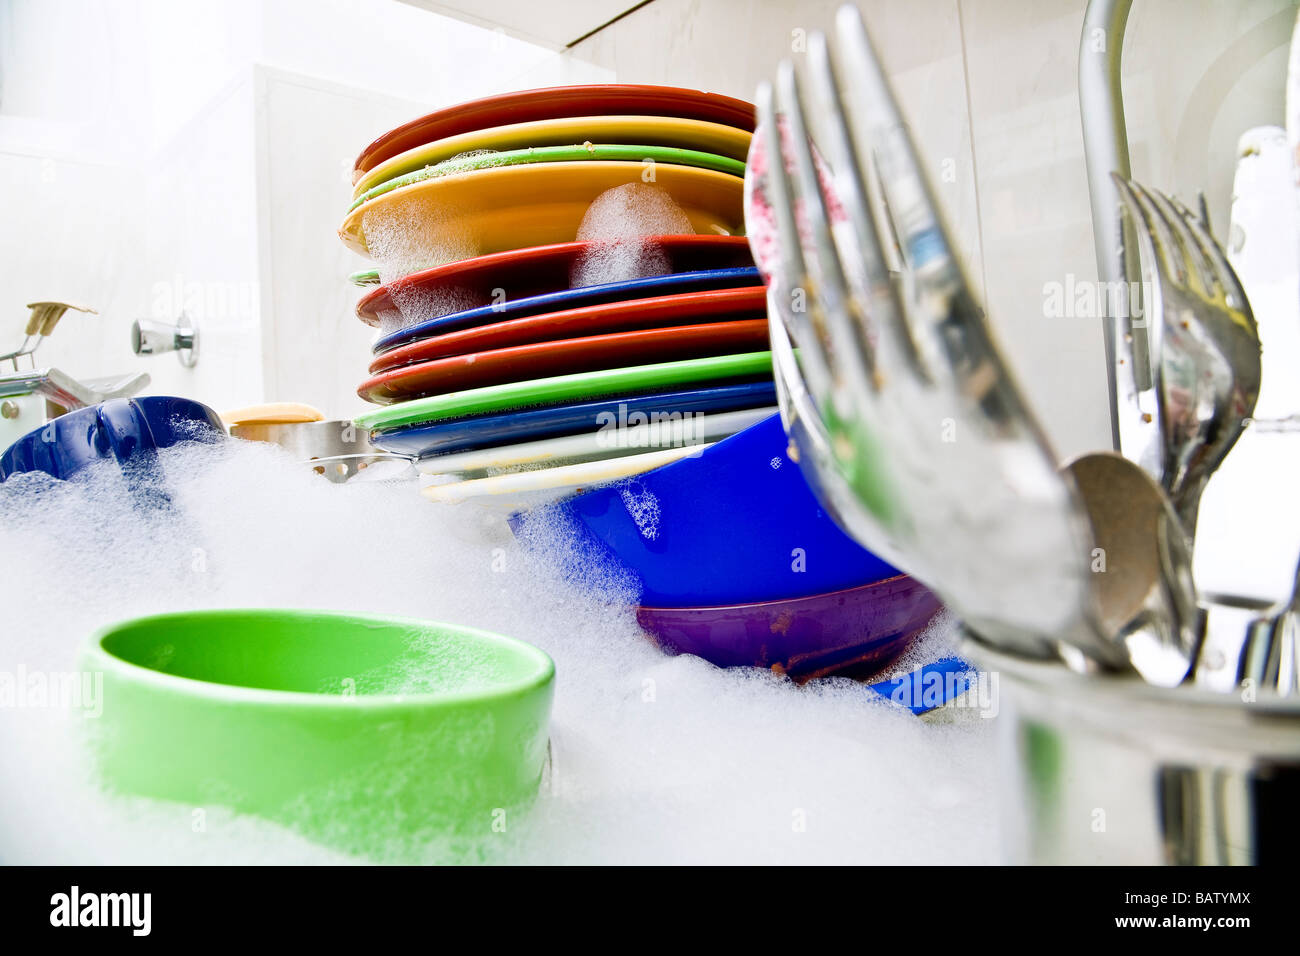 washing-up in kitchen sink - Stock Image